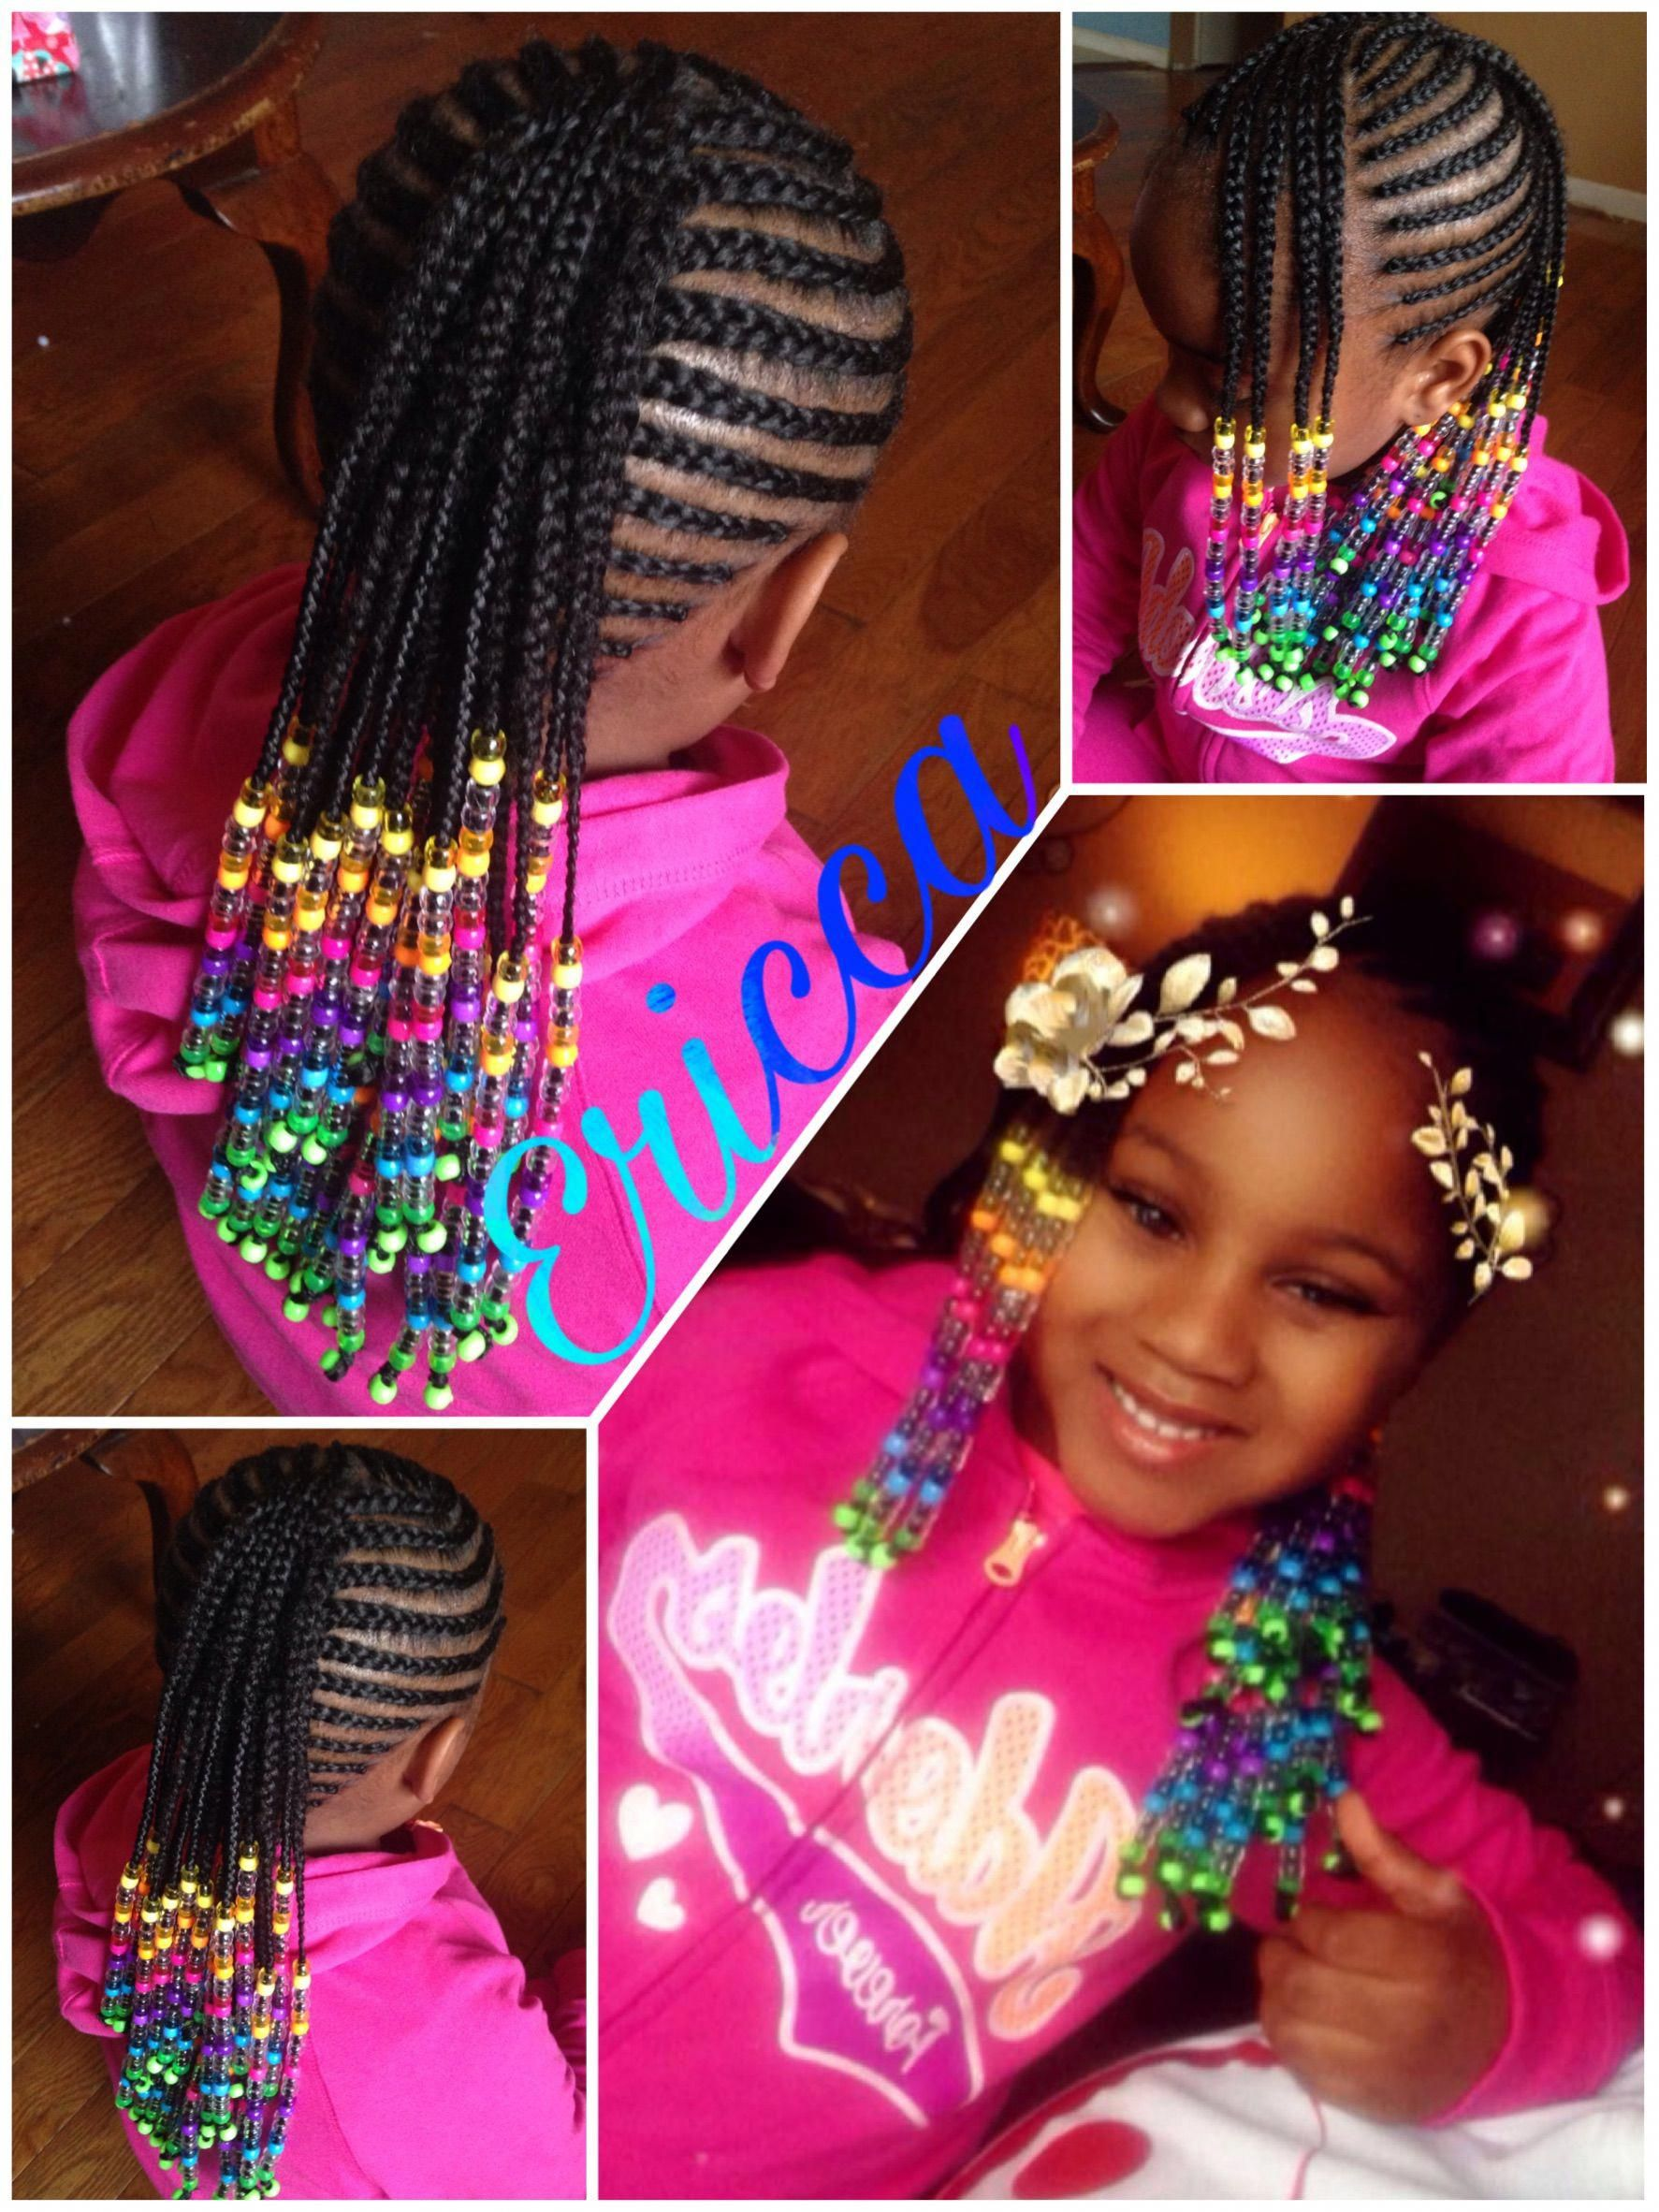 Braided Hairstyles Black Kids Braidedhairstyles Braids For Black Hair Kids Braided Hairstyles Kids Hairstyles